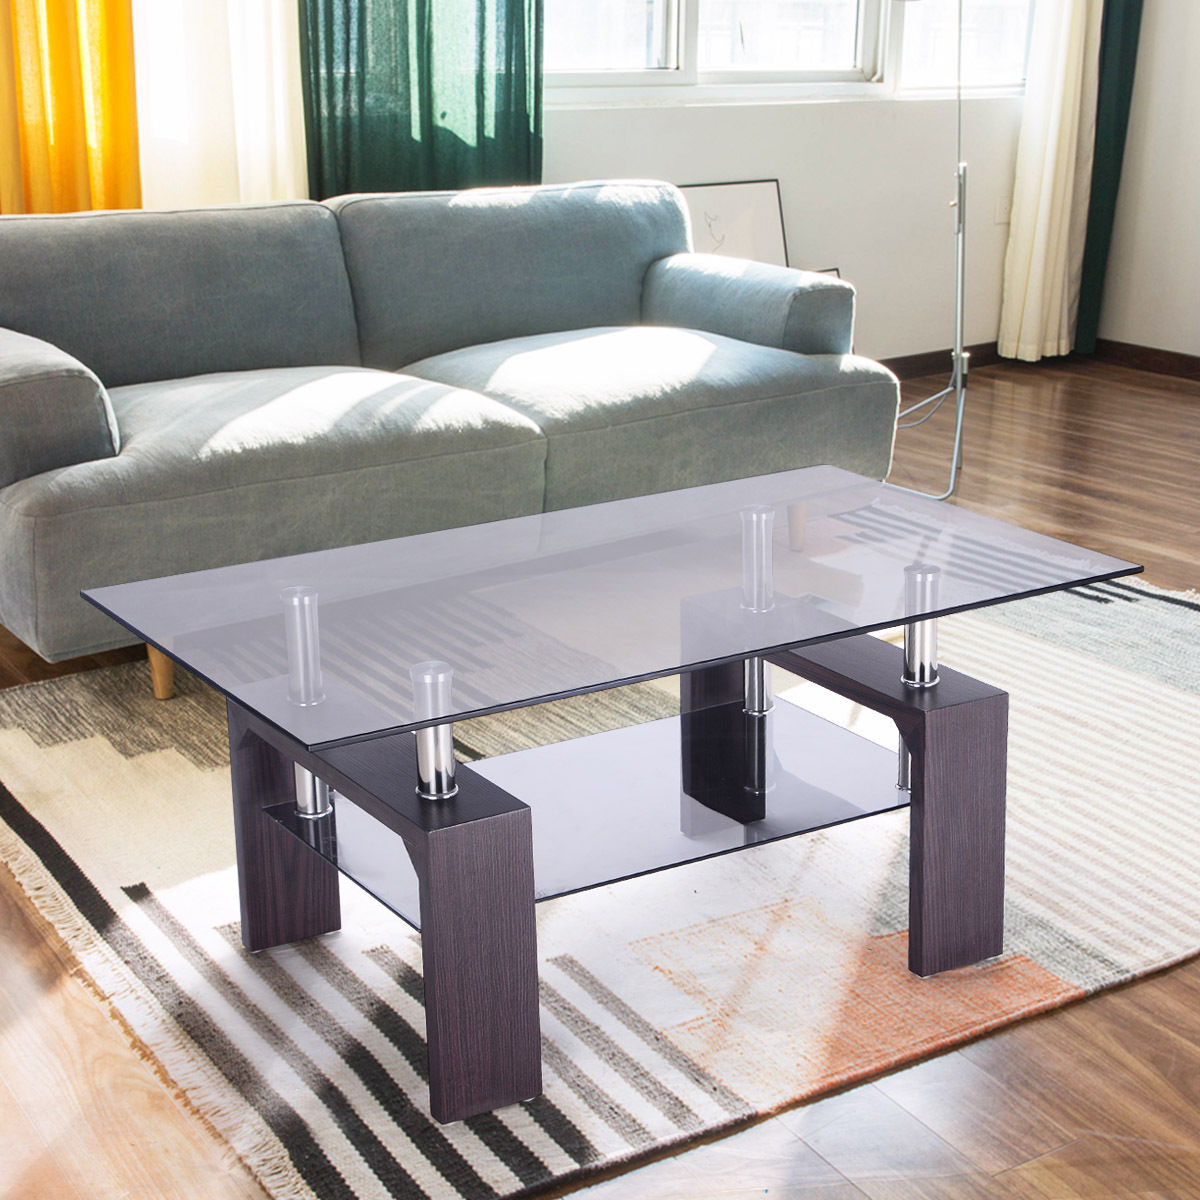 Costway Rectangular Glass Coffee Table Wood W/ Shelf Living Room Home  Furniture Part 26